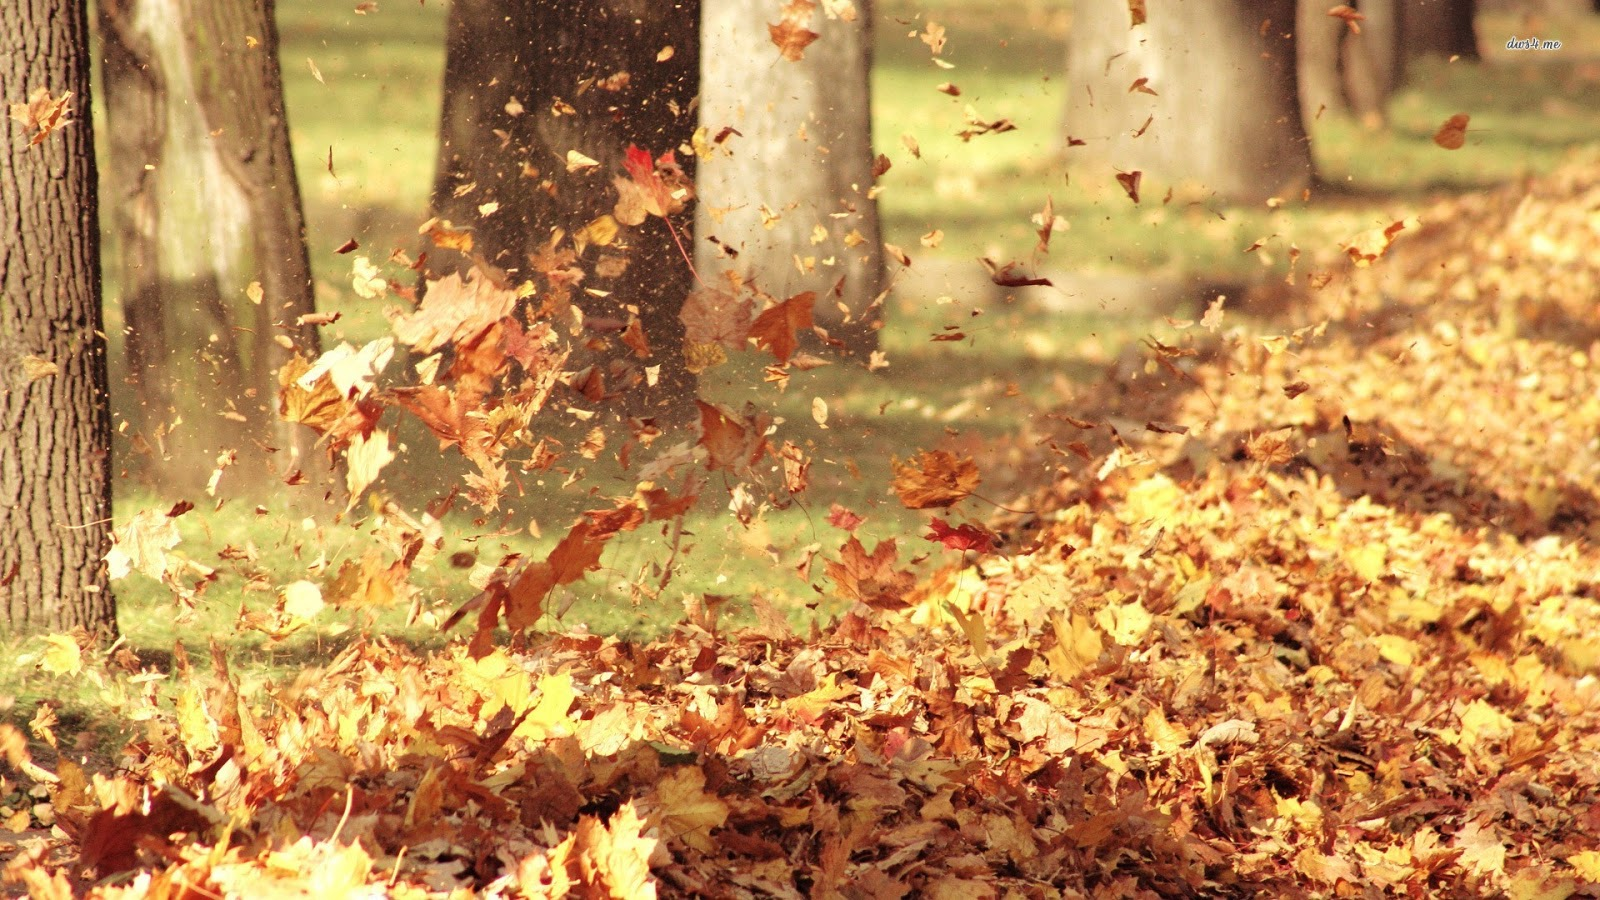 Dream About Wallpaper Falling Off Autumn Hd Wallpapers Hd Wallpapers